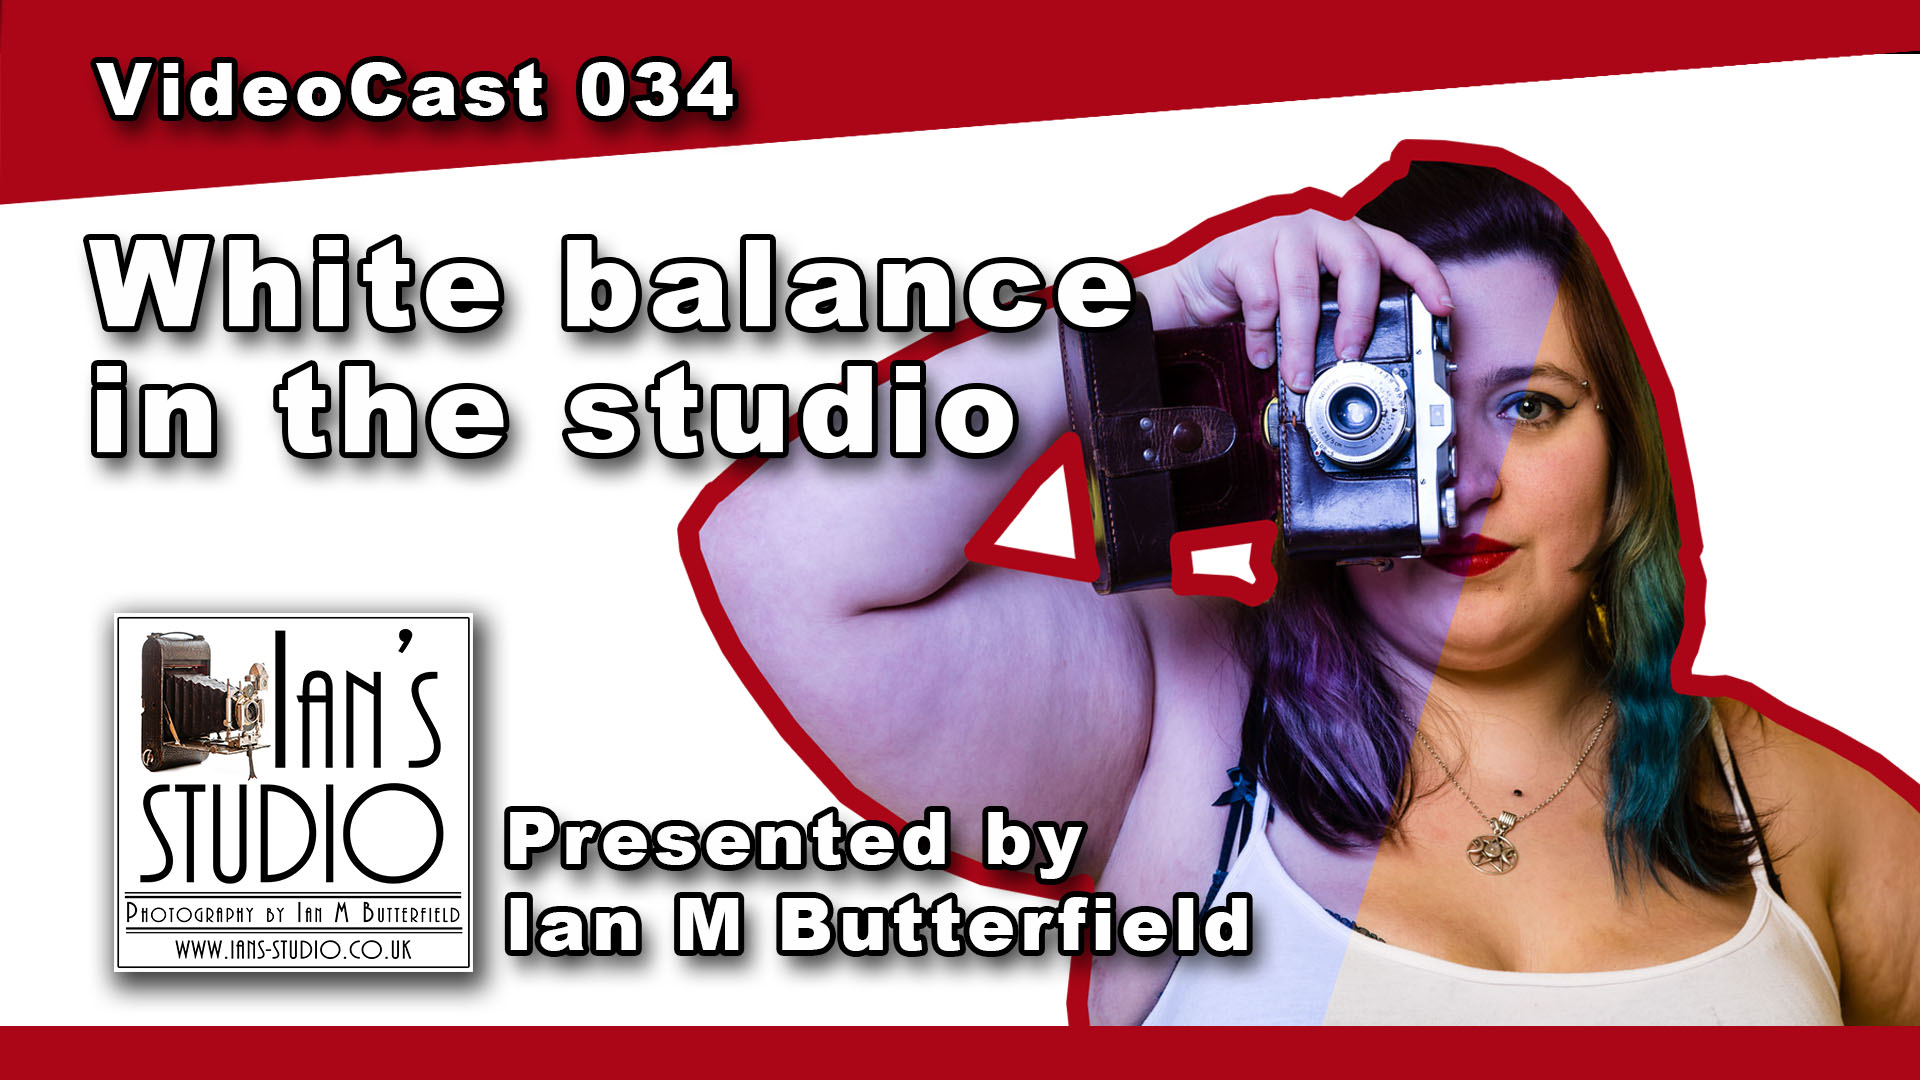 VideoCast 034: White Balance in the studio